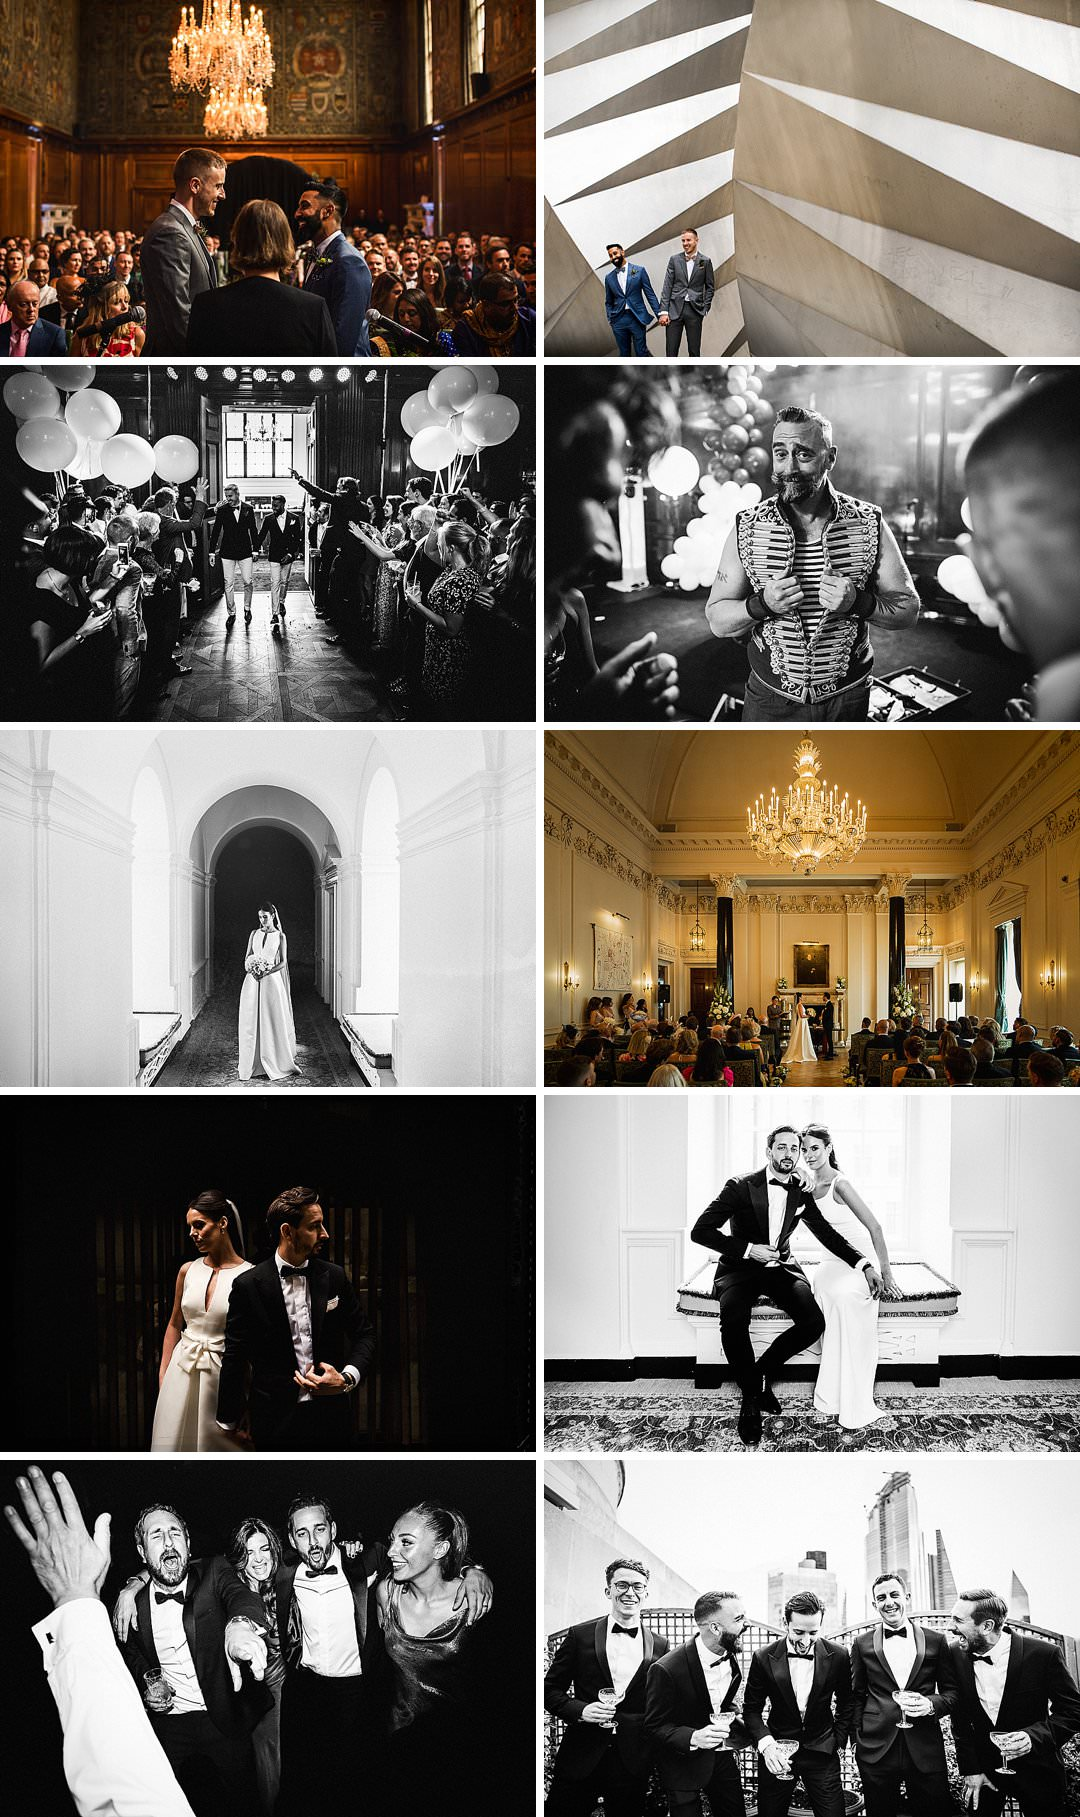 a series of images showing a selection from 2 wedding photographed at the NED in London by London Wedding Photographer Matt Parry